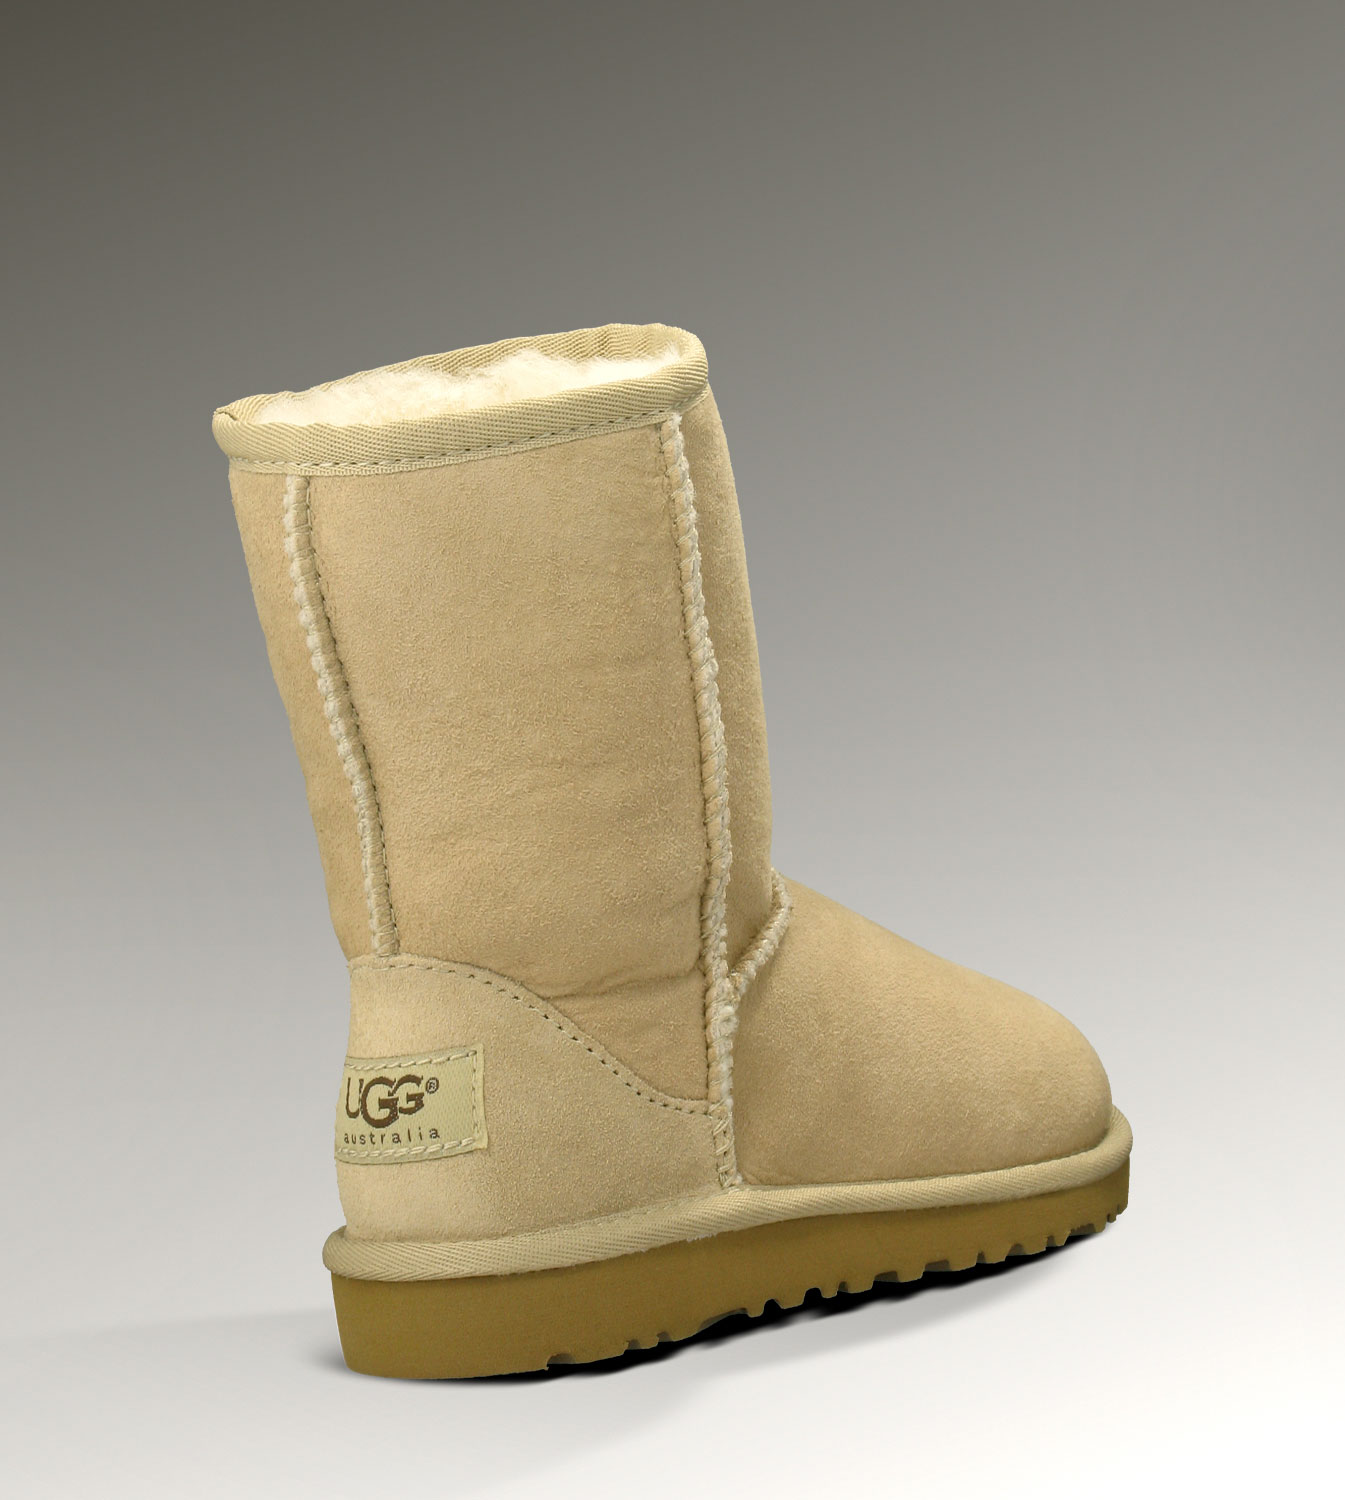 UGG Classic Short 5251 Sand Boots